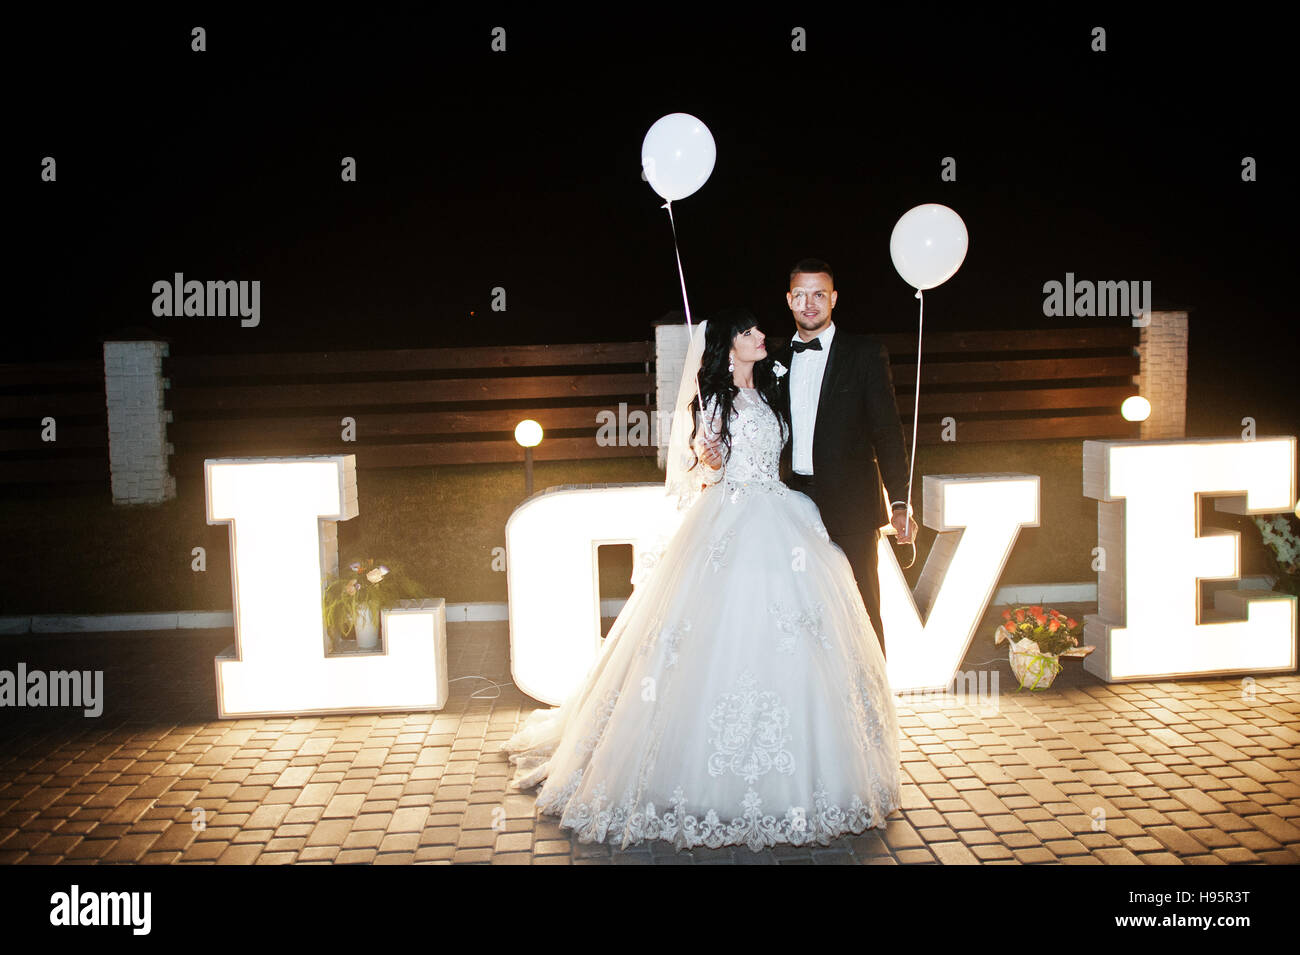 Stylish Wedding Couple With Lights Balloons Stay Near Great Big